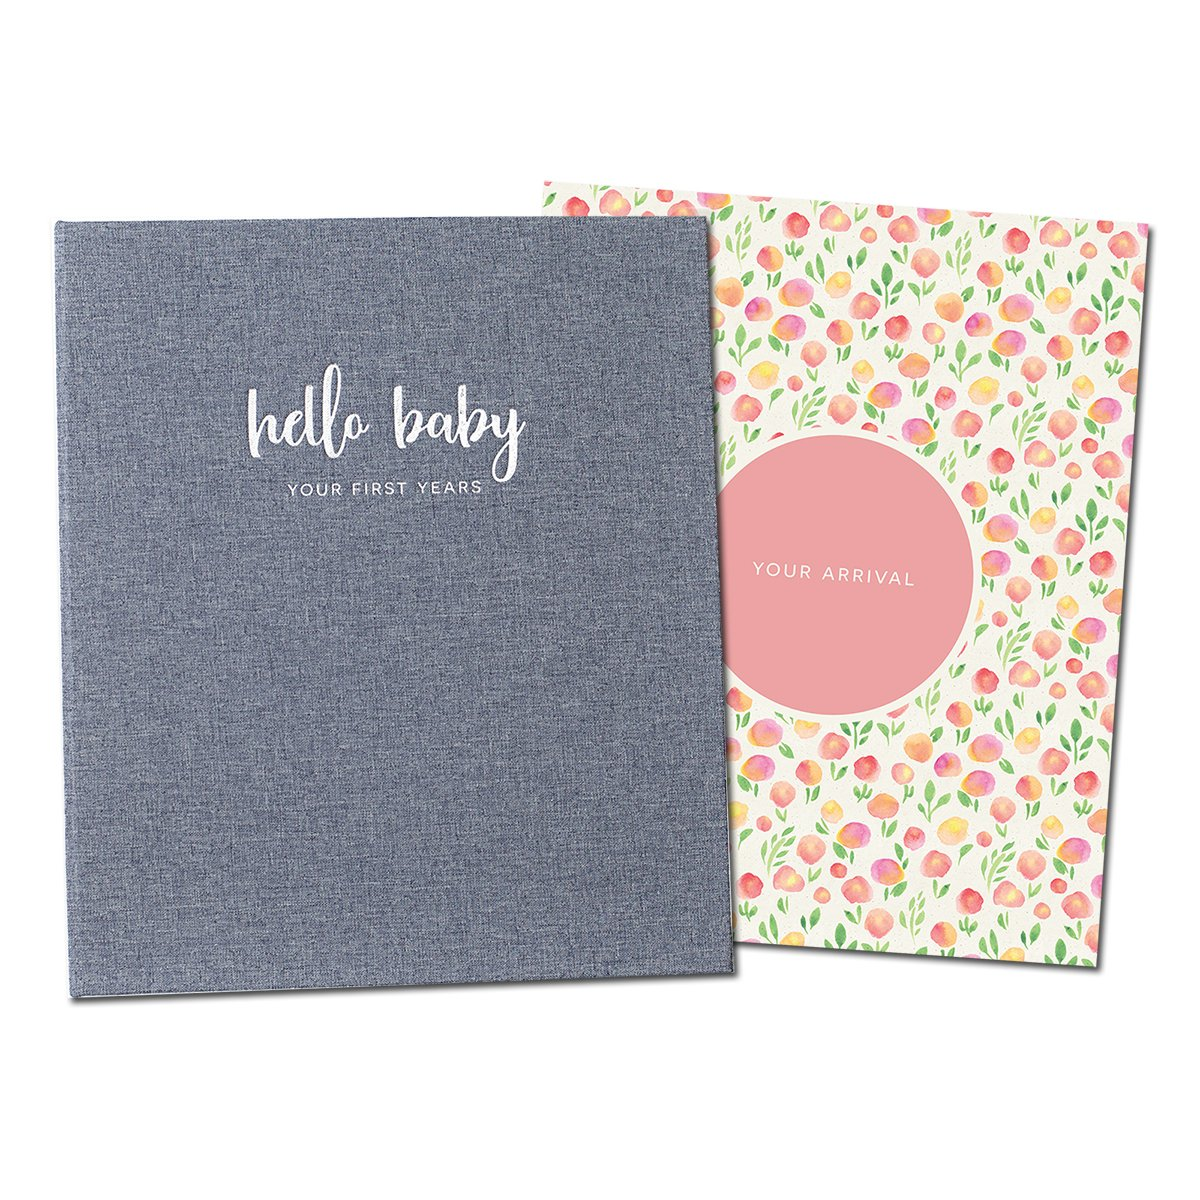 Minimalist Baby Memory Book For Girls | Keepsake Milestone Journal | LGBTQ Friendly | 9.75 x 11.25 In. 60 pages | Perfect Baby Shower Gift Peachly